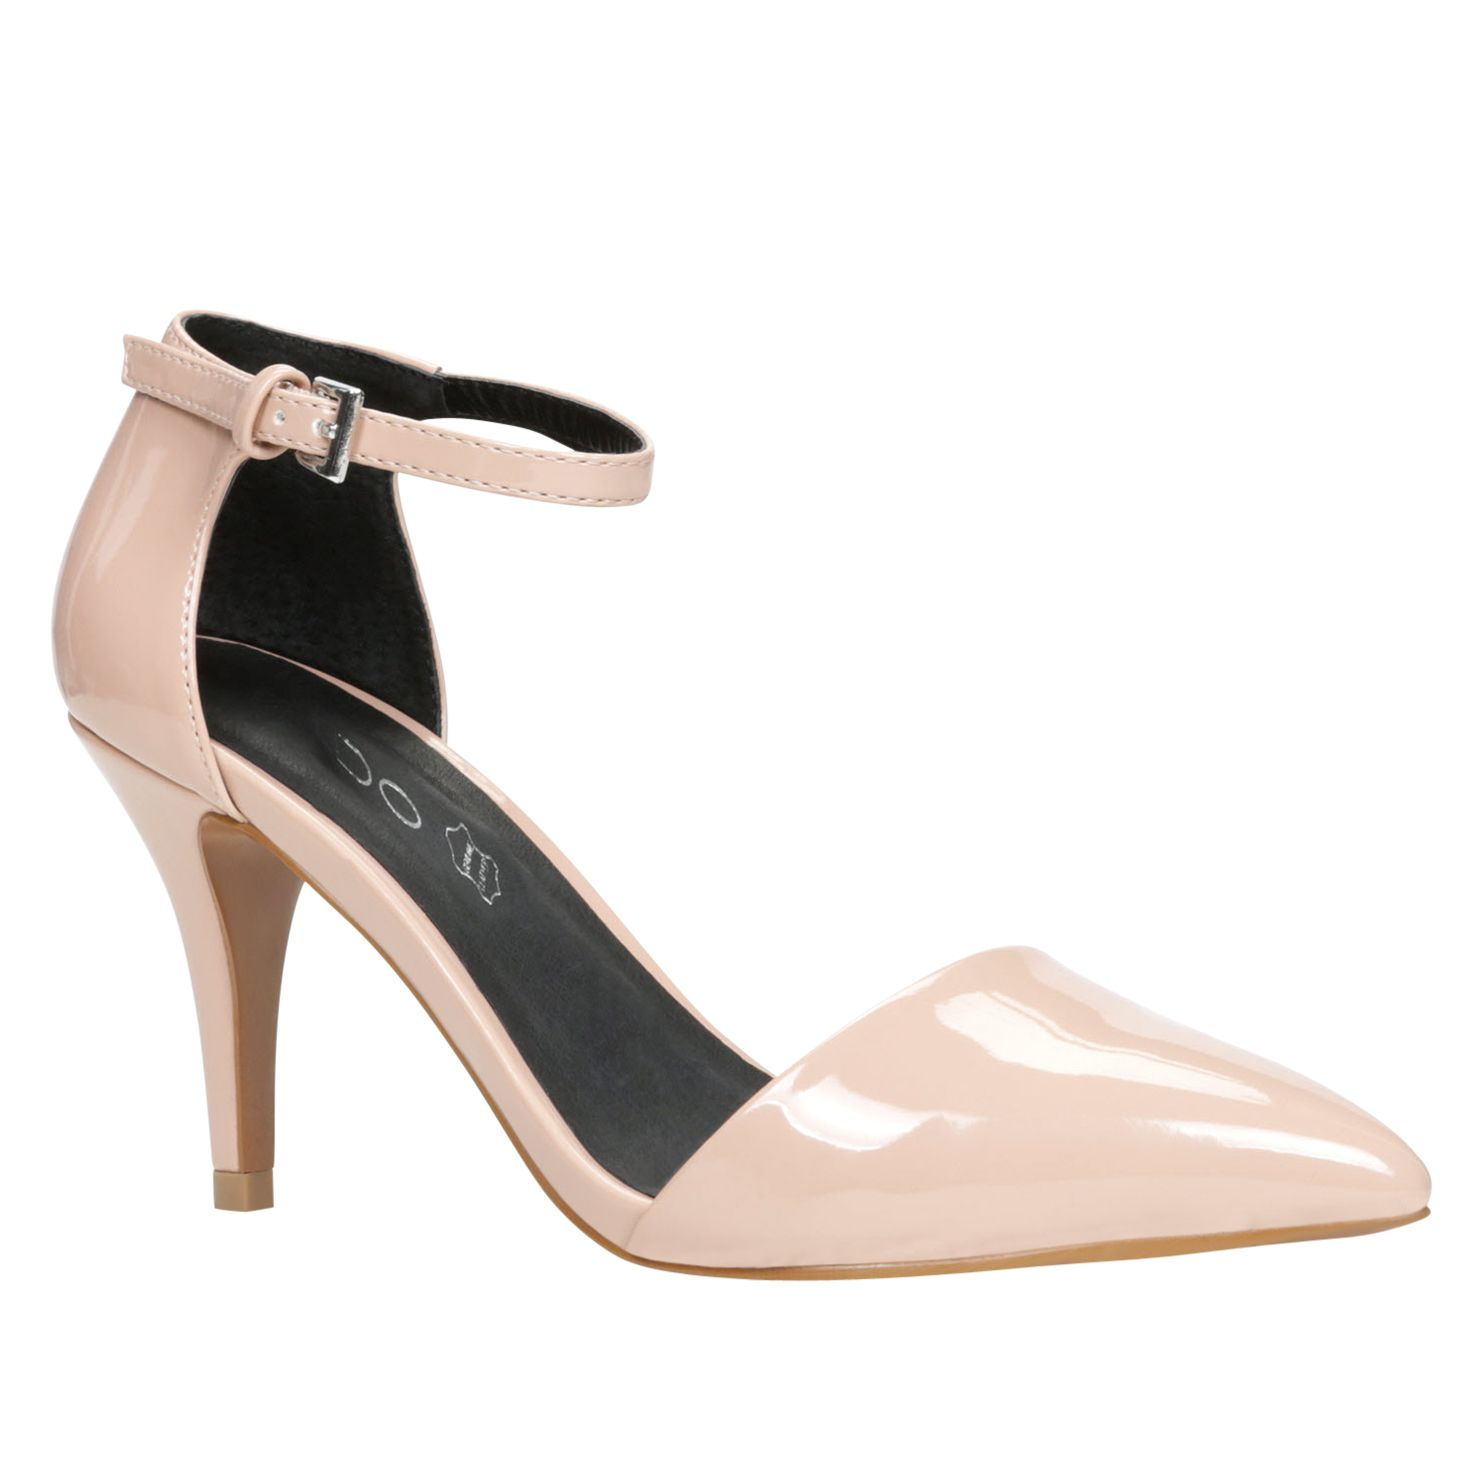 Manola pointed toe court shoes